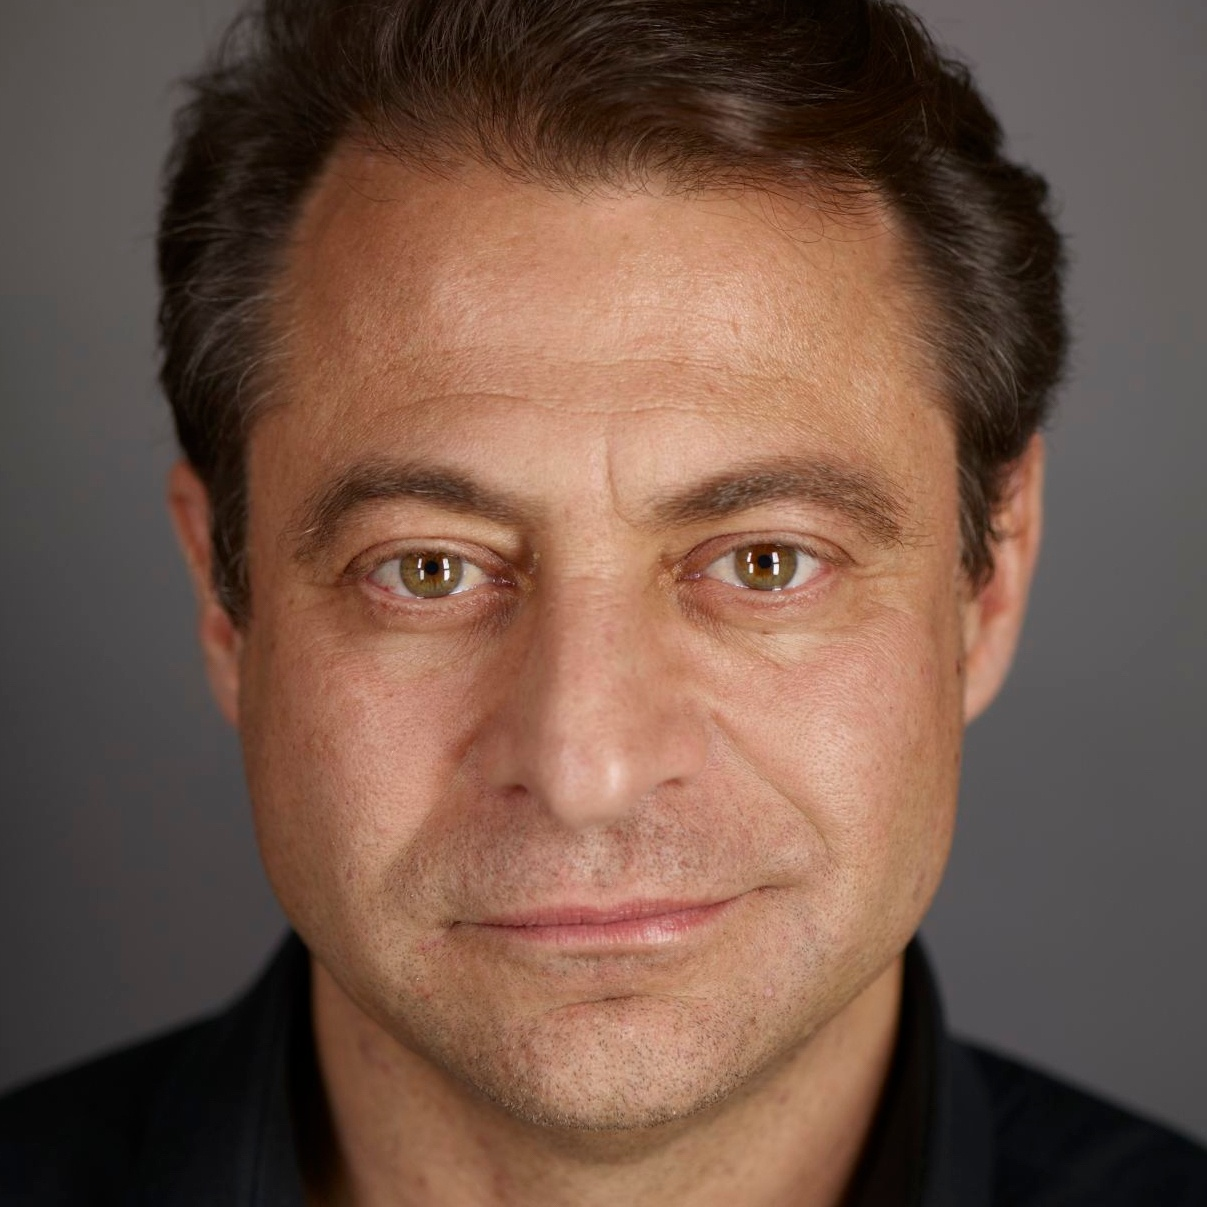 Peter-Diamandis-Headshot copy.jpg